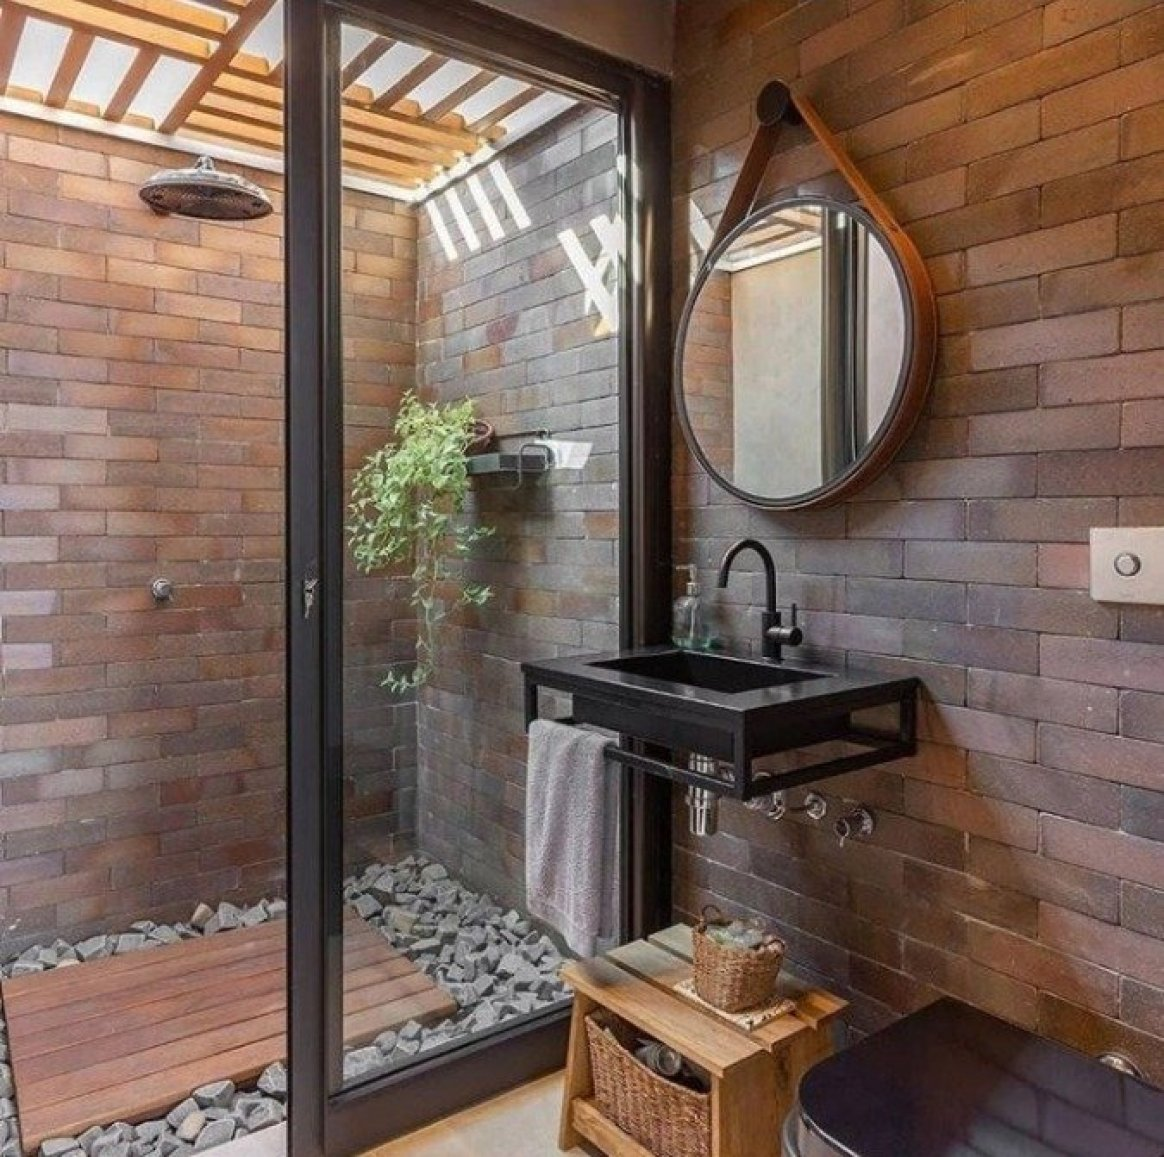 How To Build an Outdoor Shower: A Definitive DIY Guide